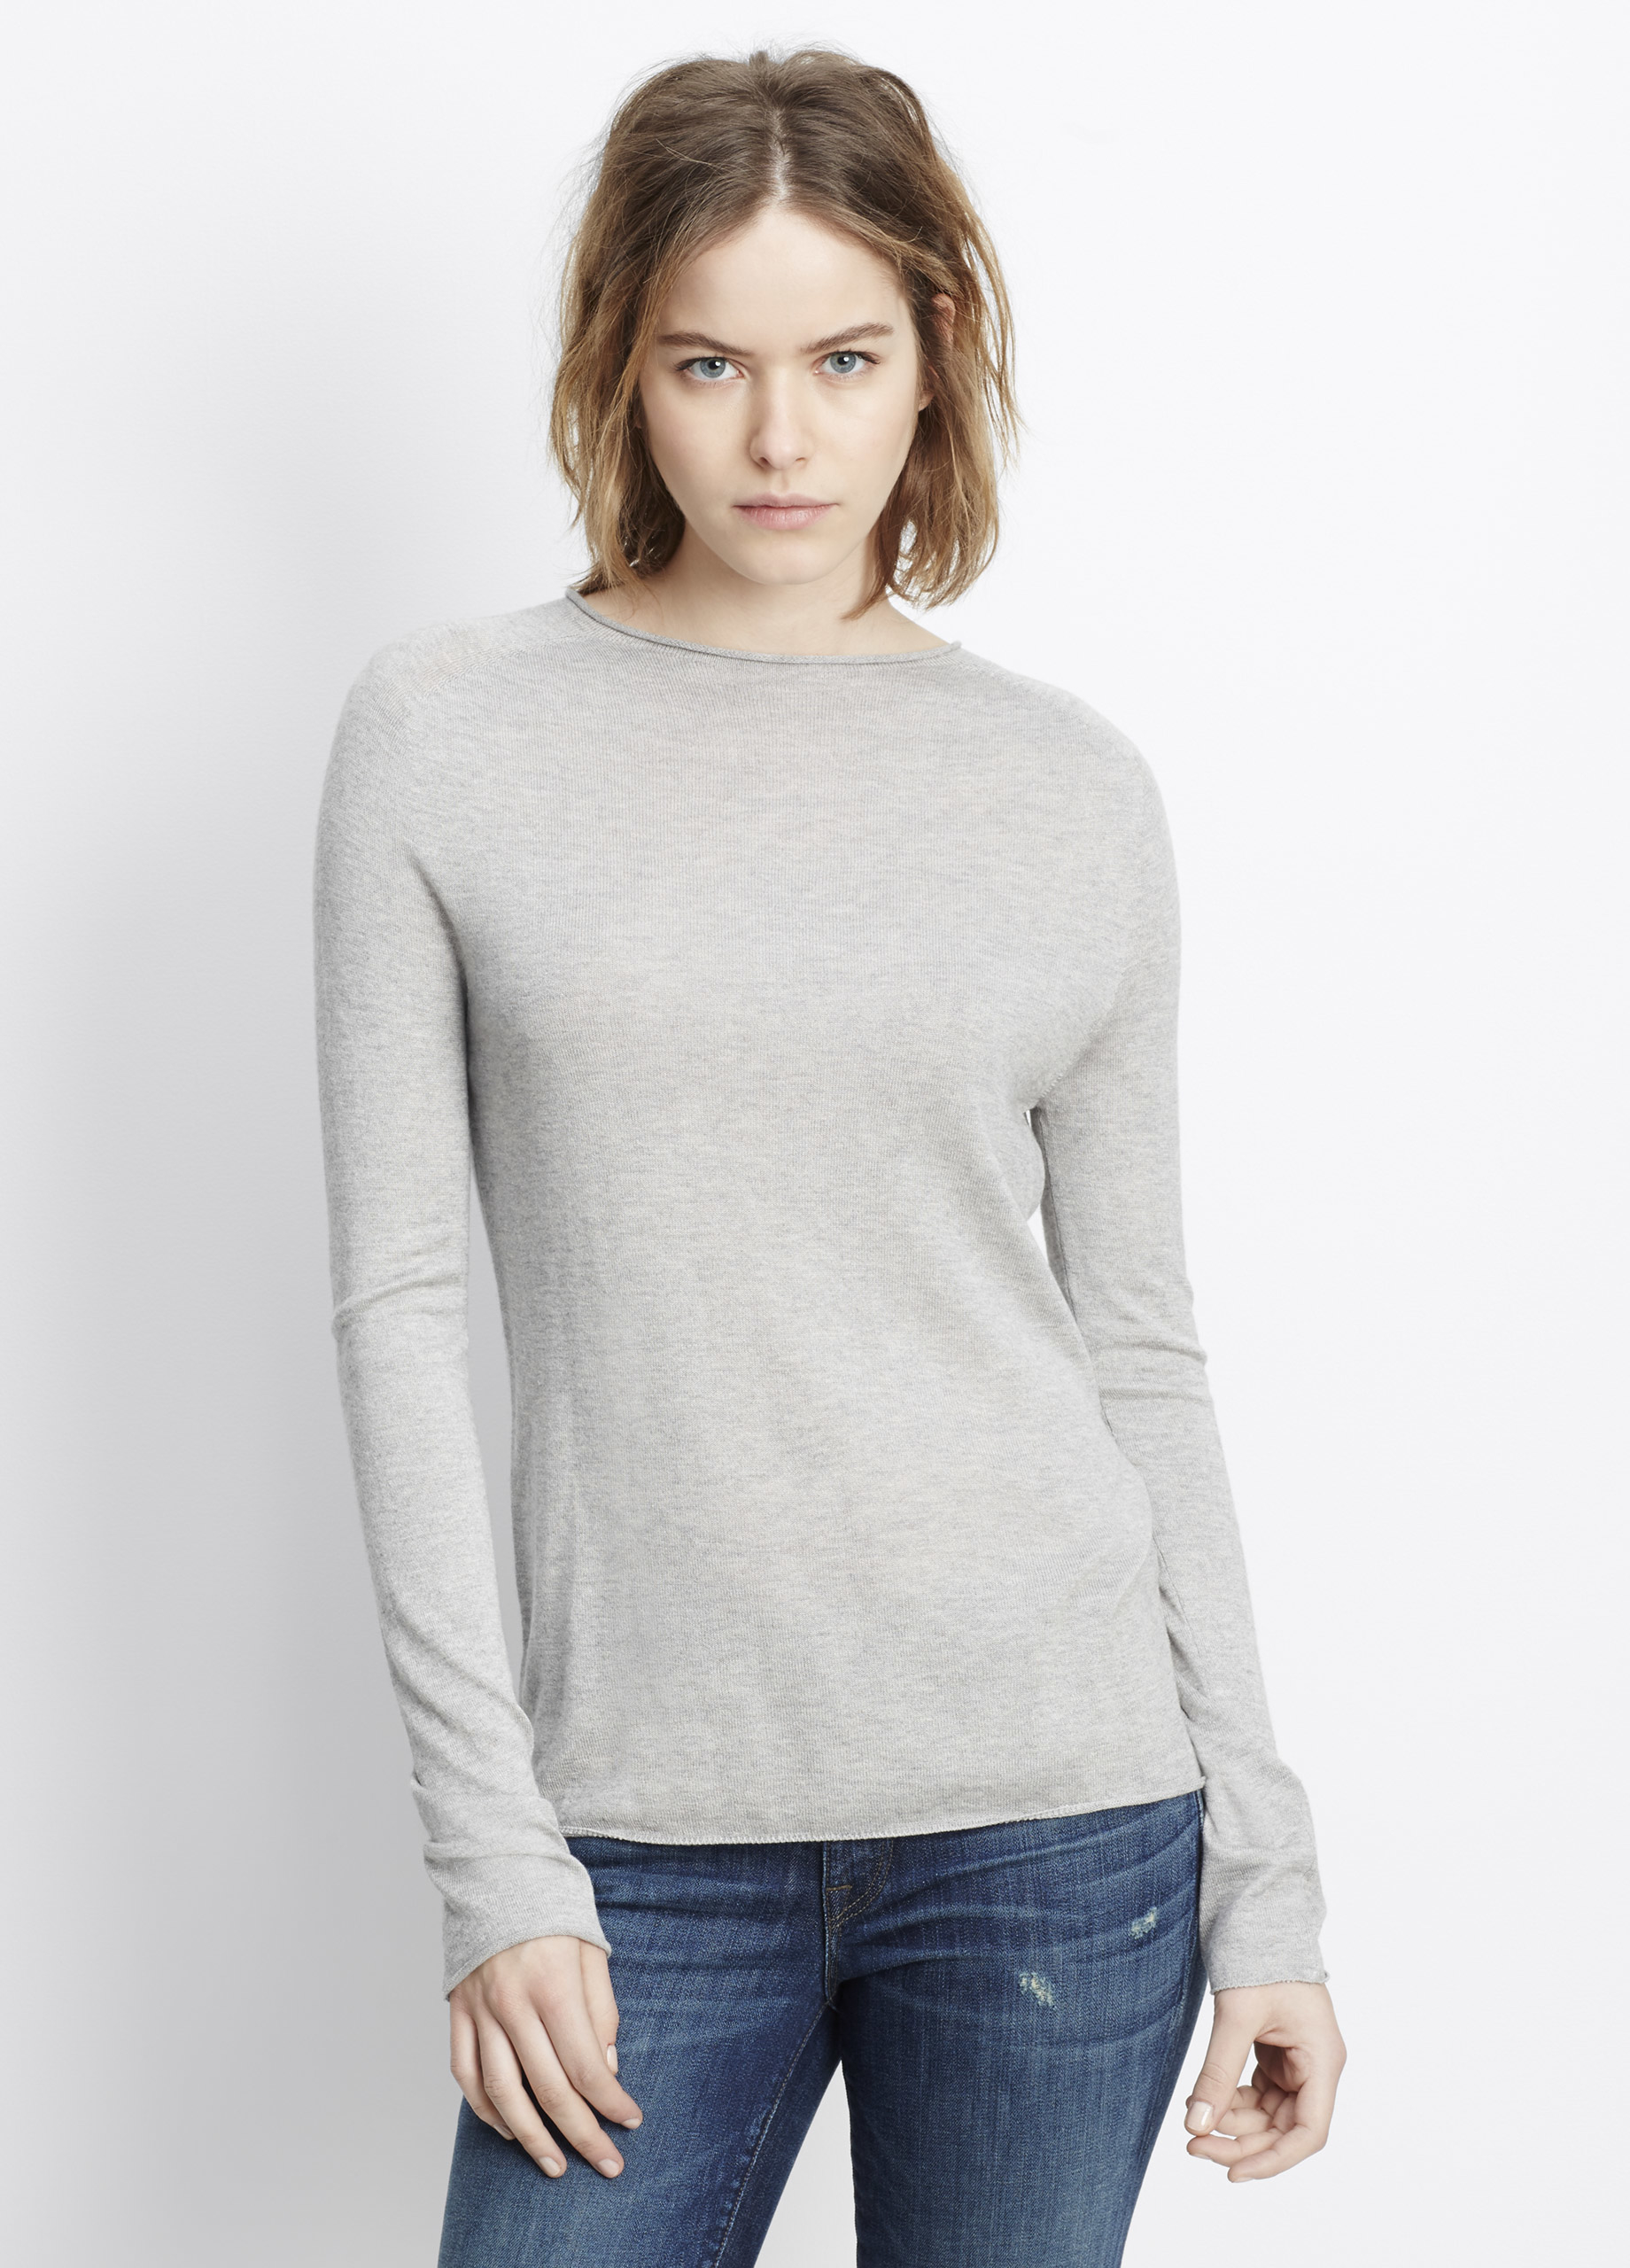 Vince Silk Cashmere Rolled Seam Funnel Neck Sweater in Gray | Lyst